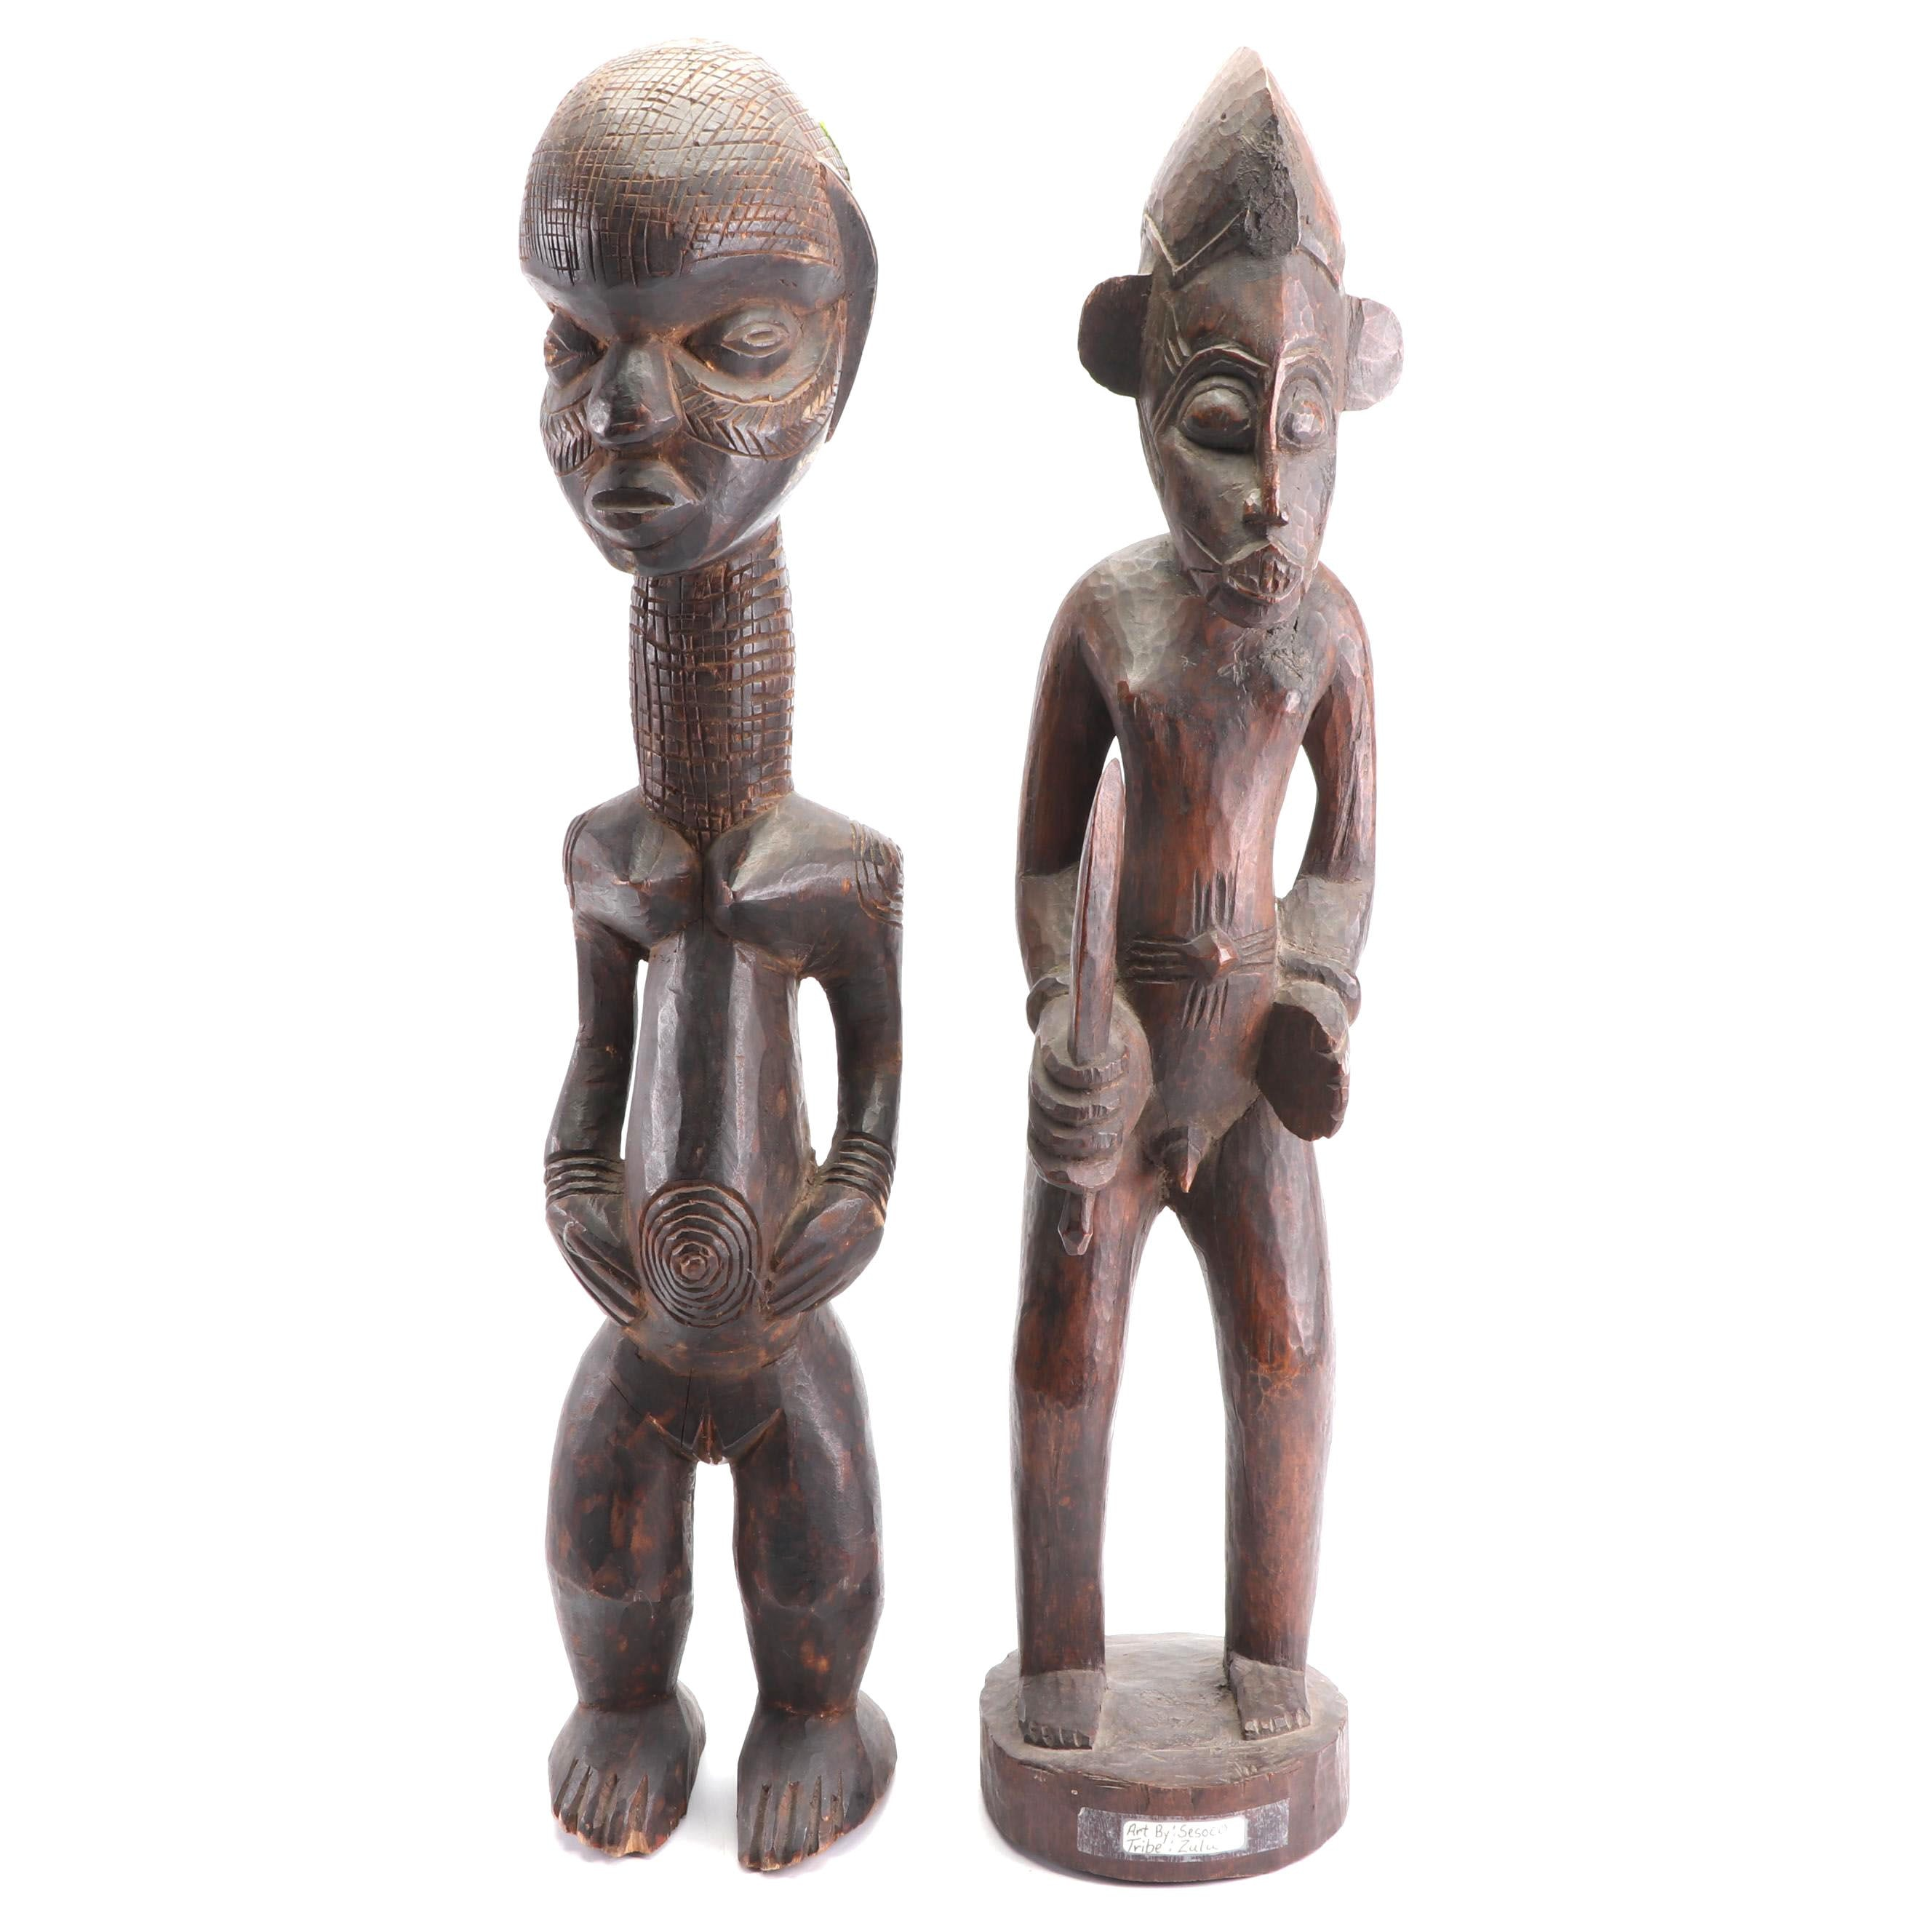 Carved Fertility Figures from the Zulu Tribe